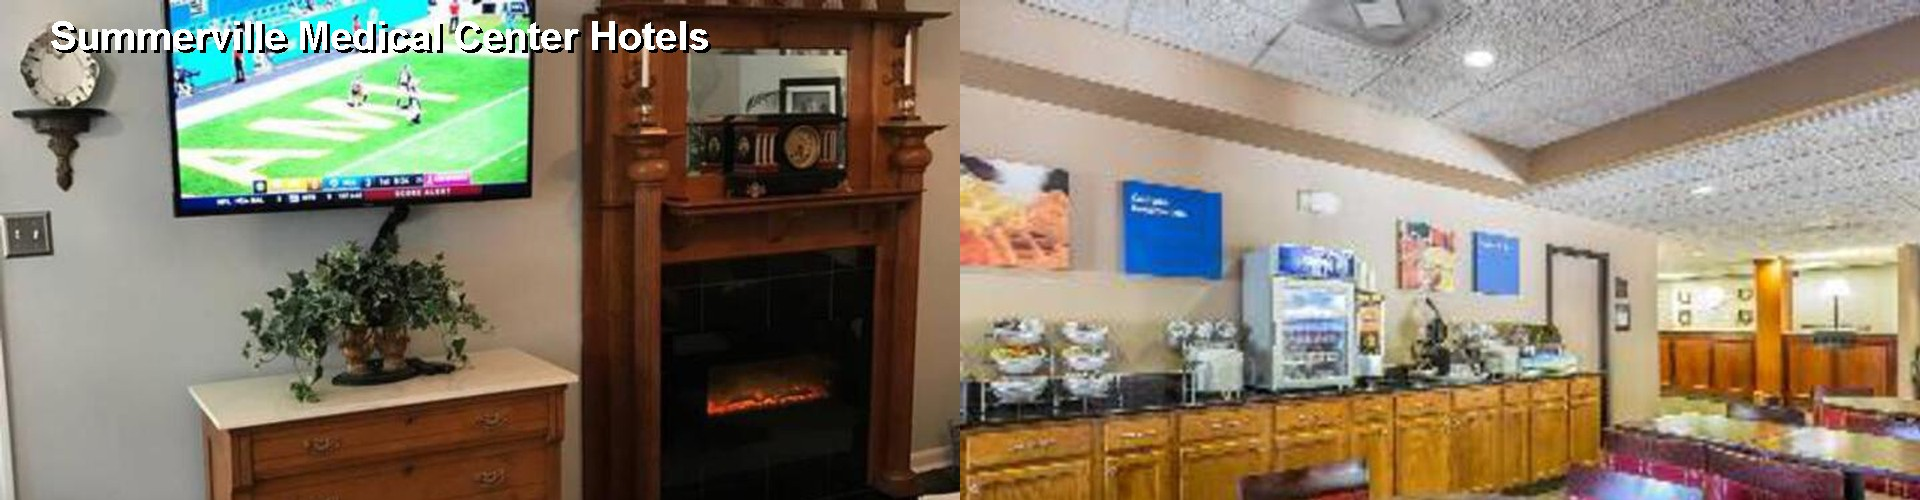 5 Best Hotels near Summerville Medical Center